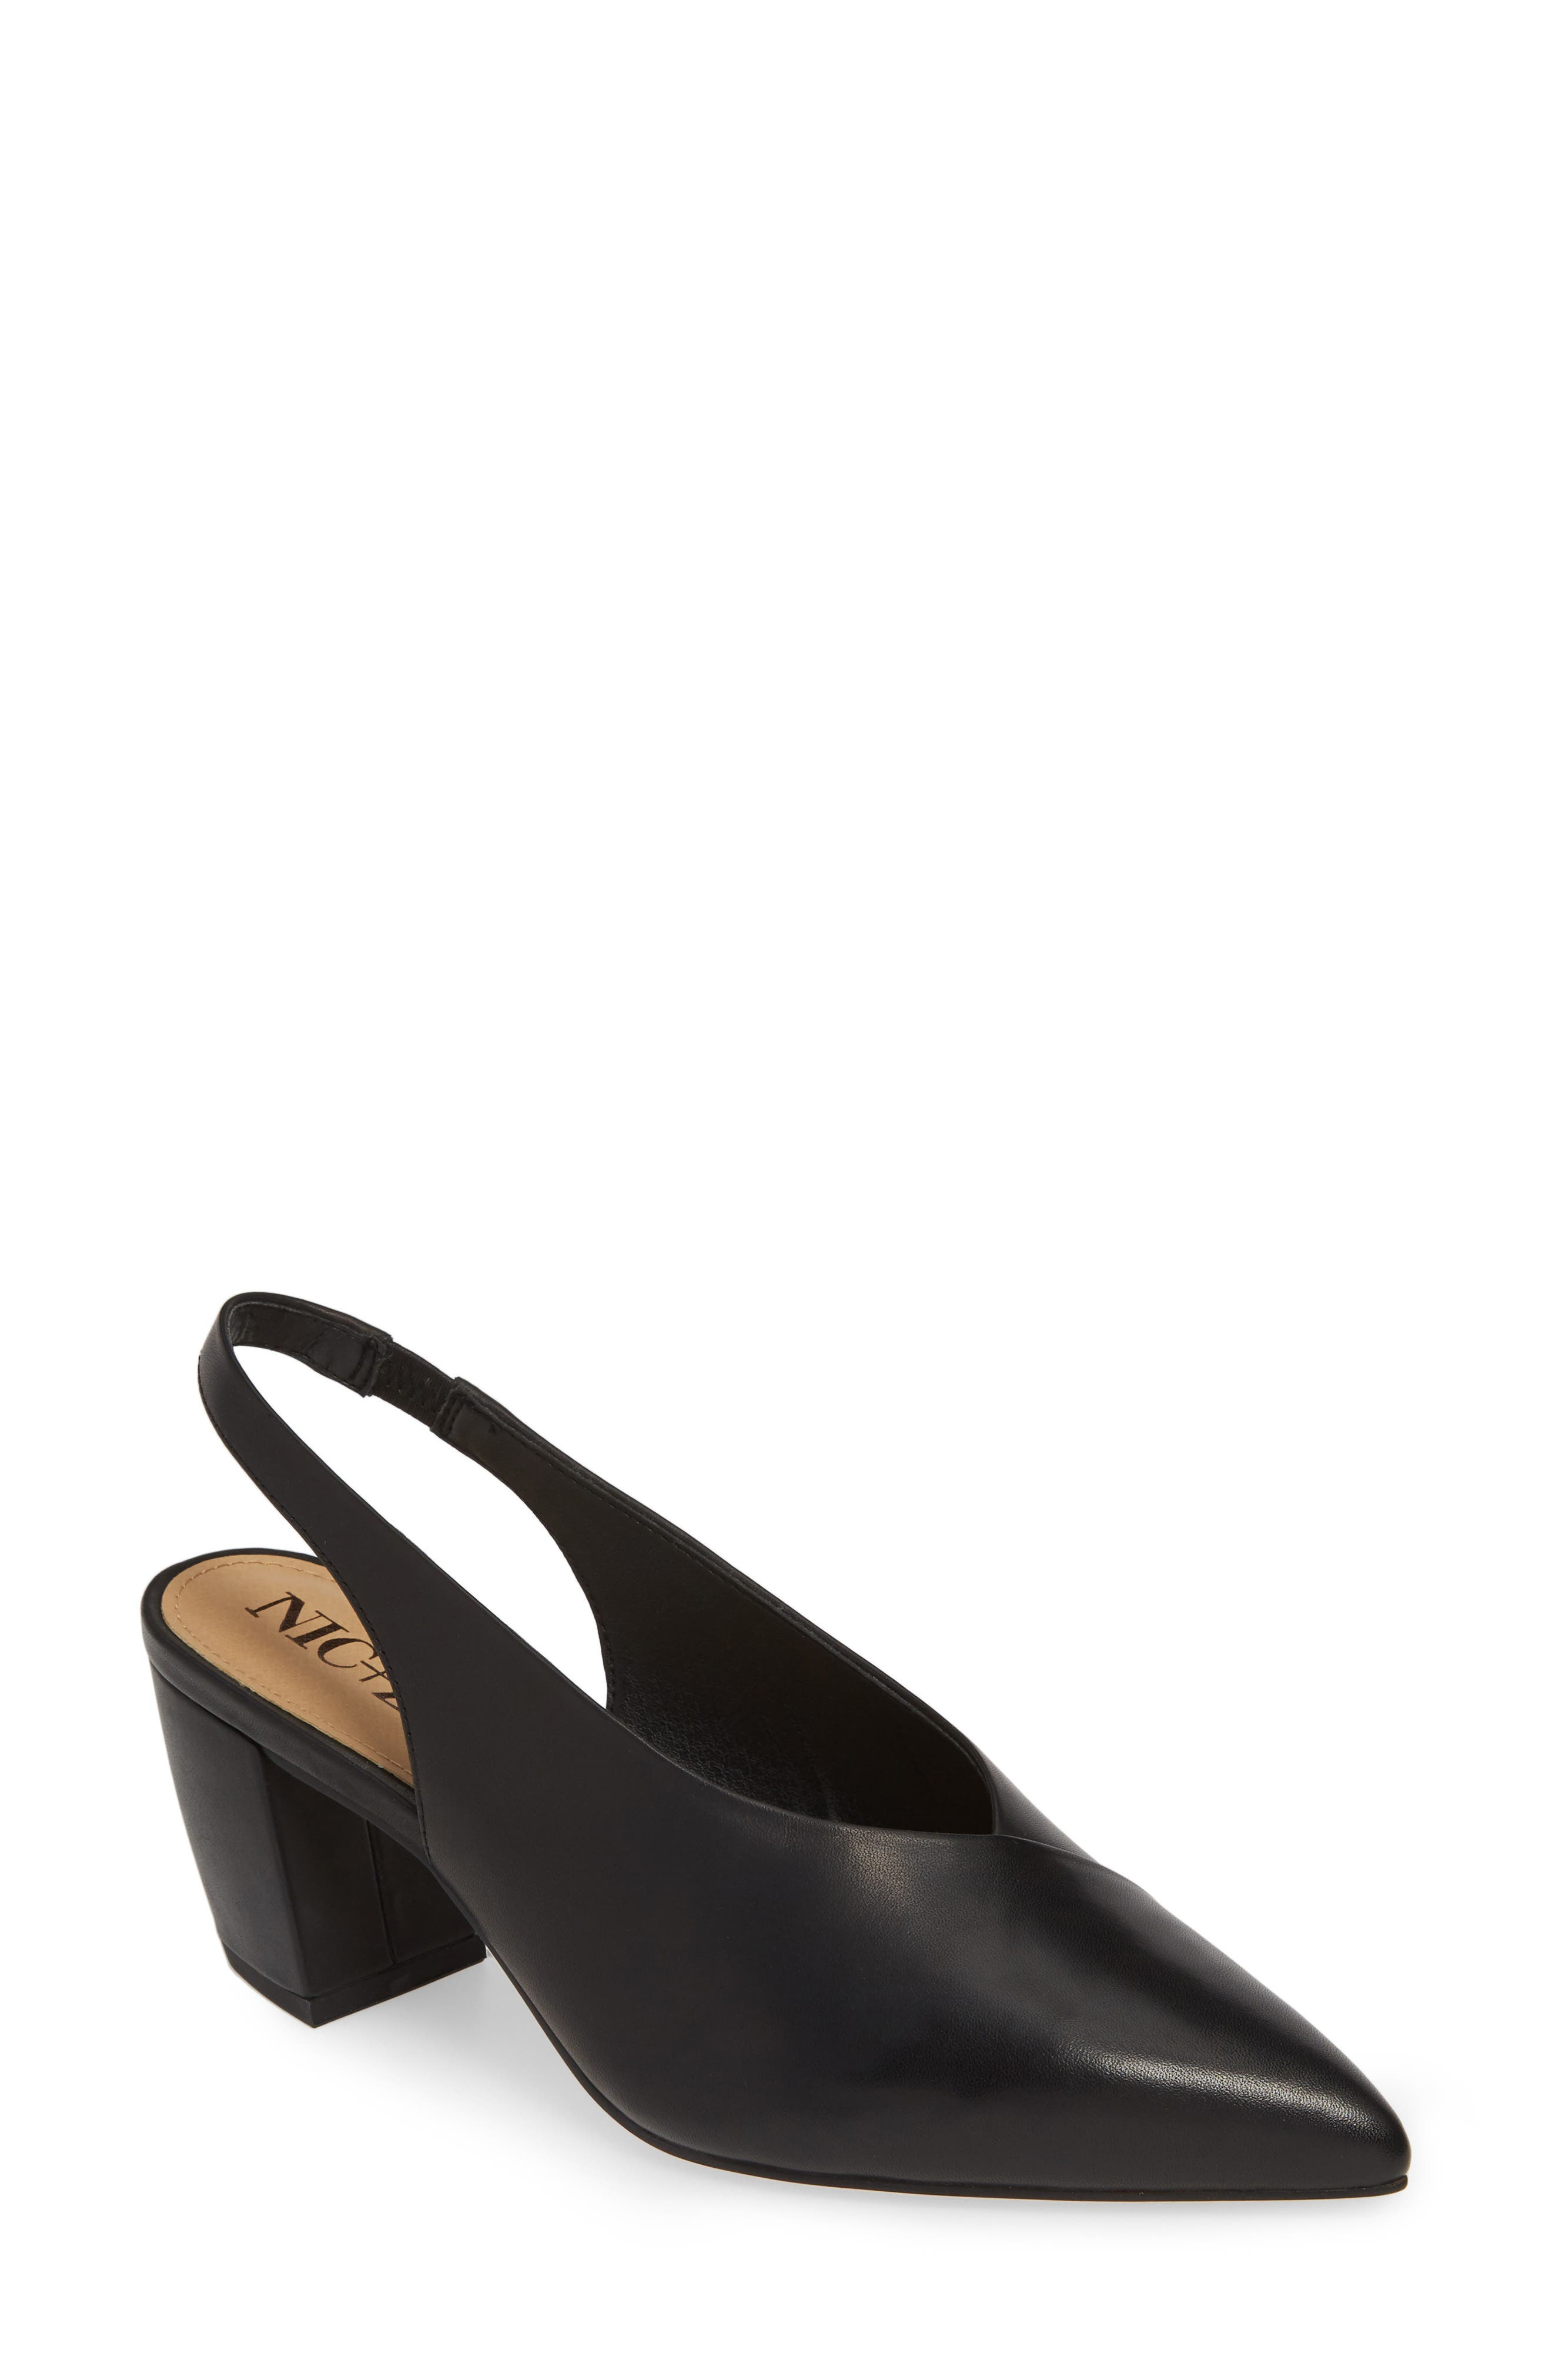 NIC+ZOE, Camille Slingback Pointy Toe Pump, Main thumbnail 1, color, BLACK LEATHER